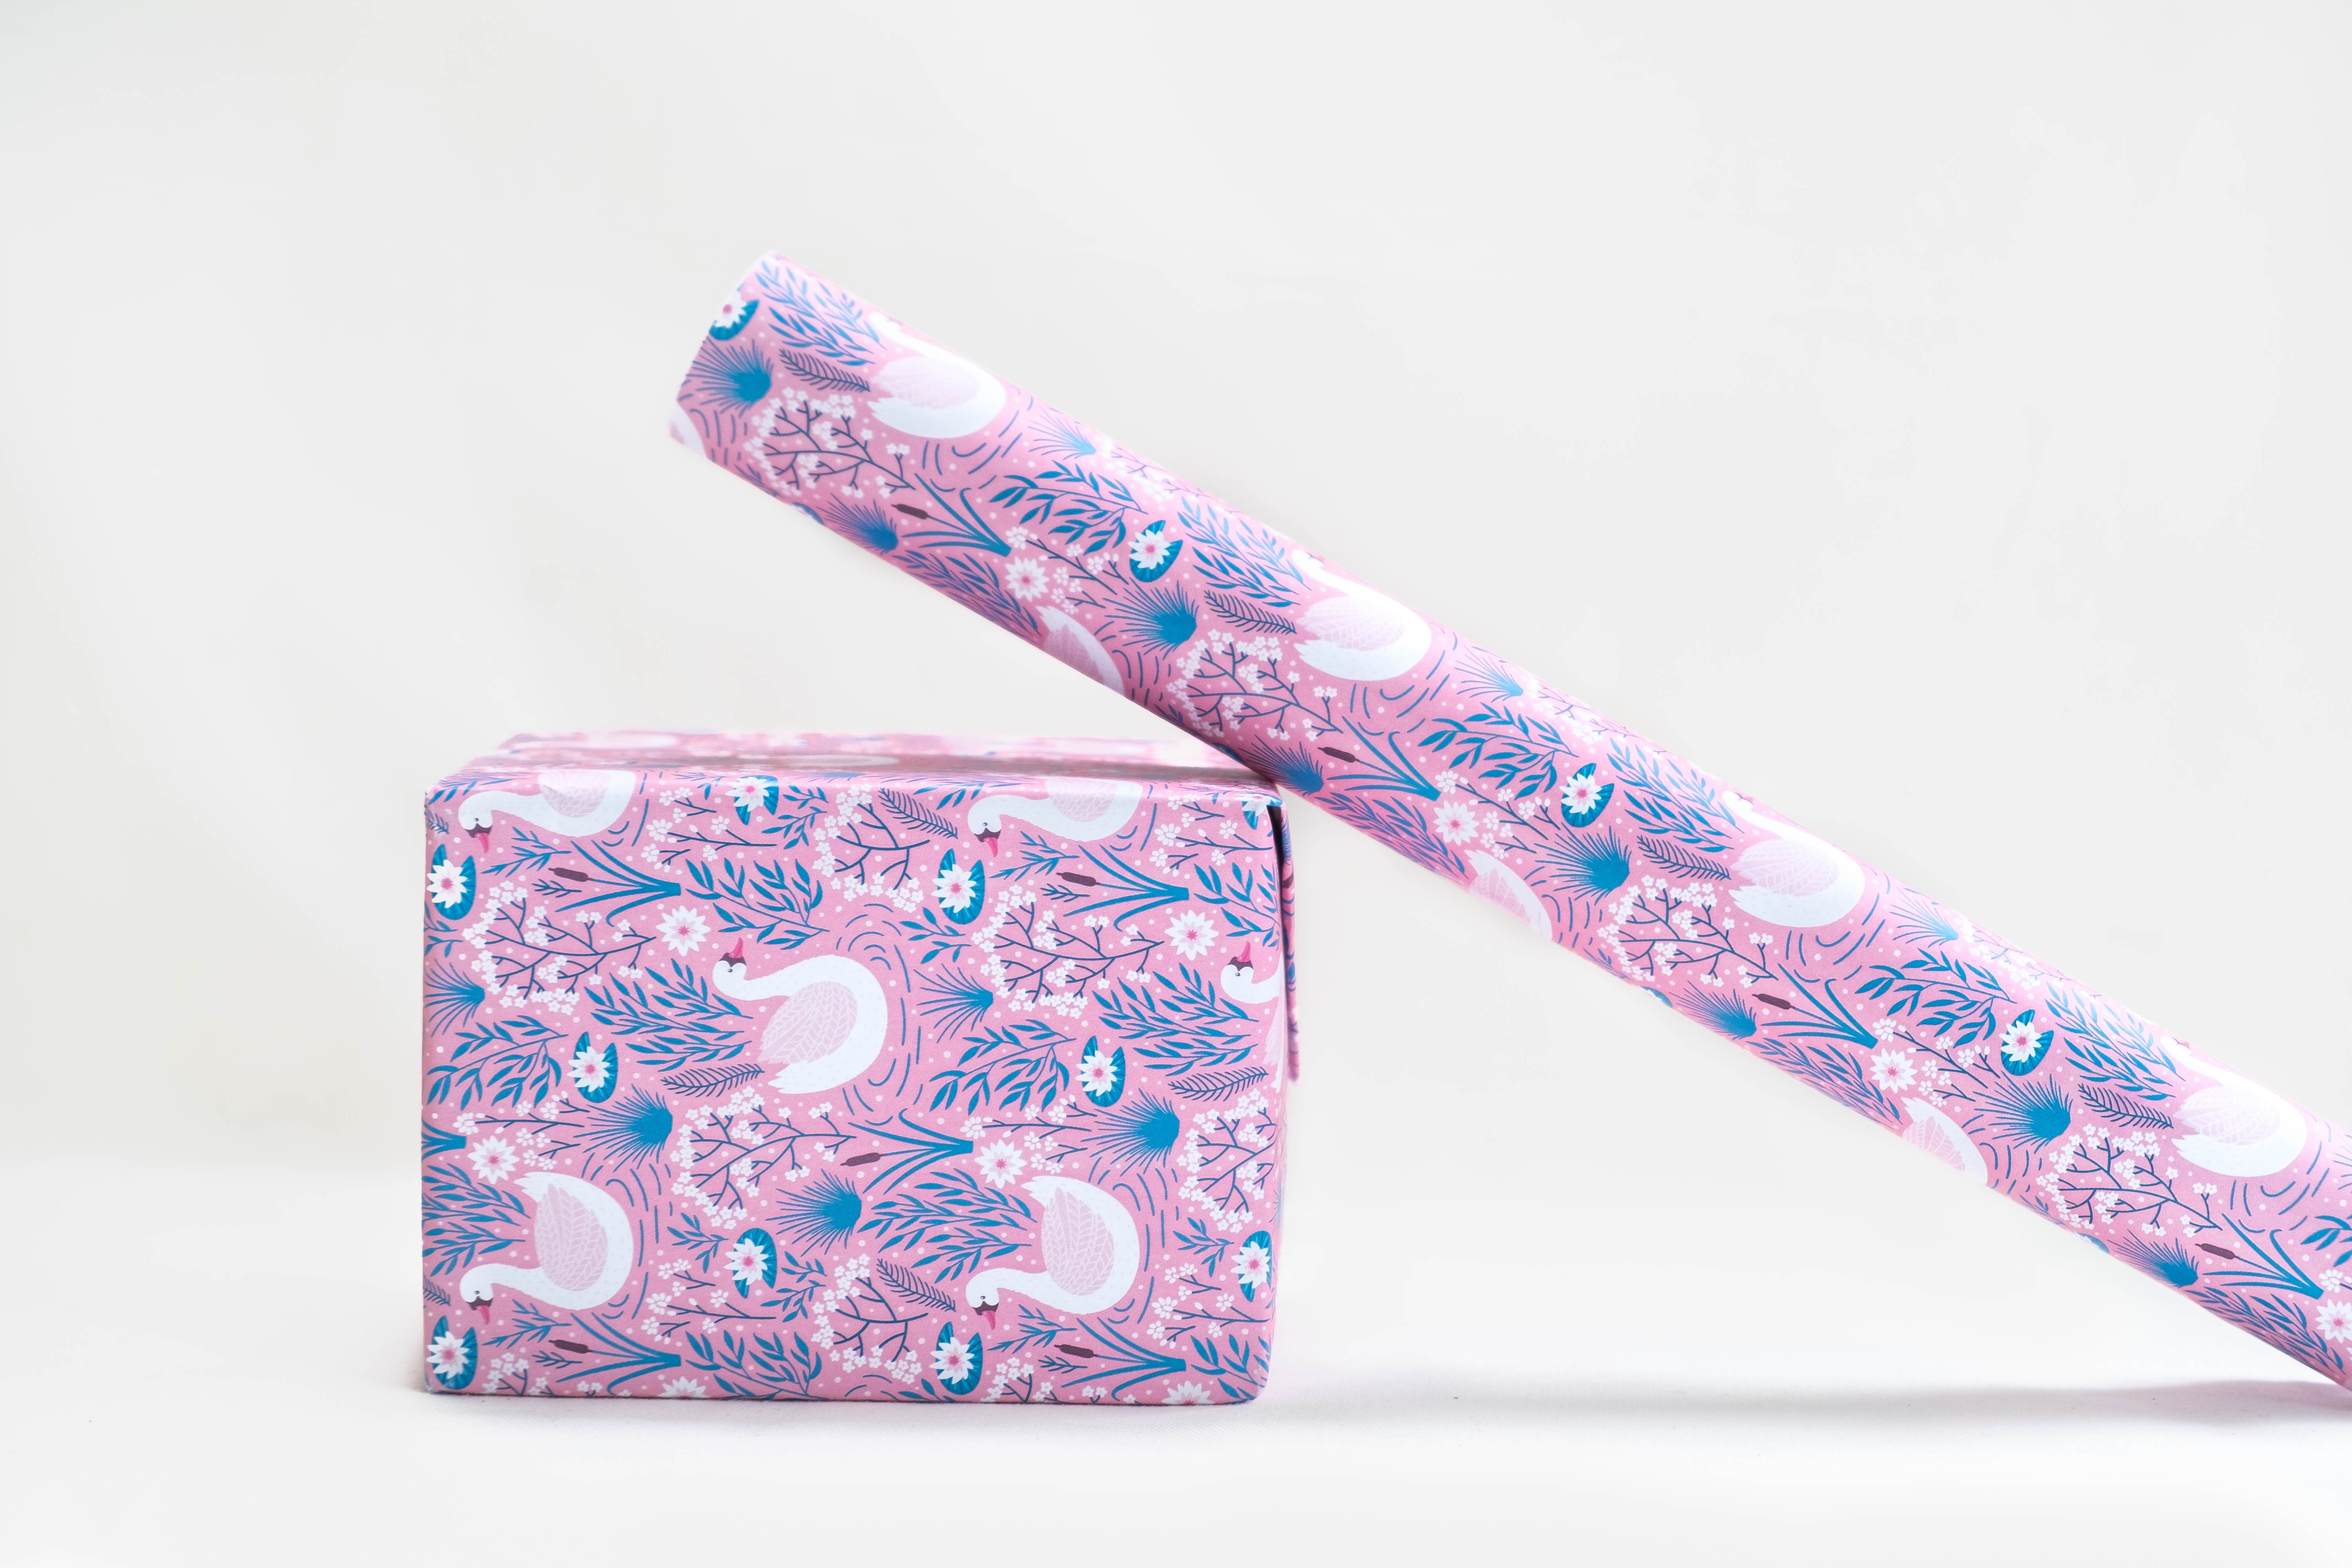 pink, white, and blue floral gift wrap leaning on wrapped box